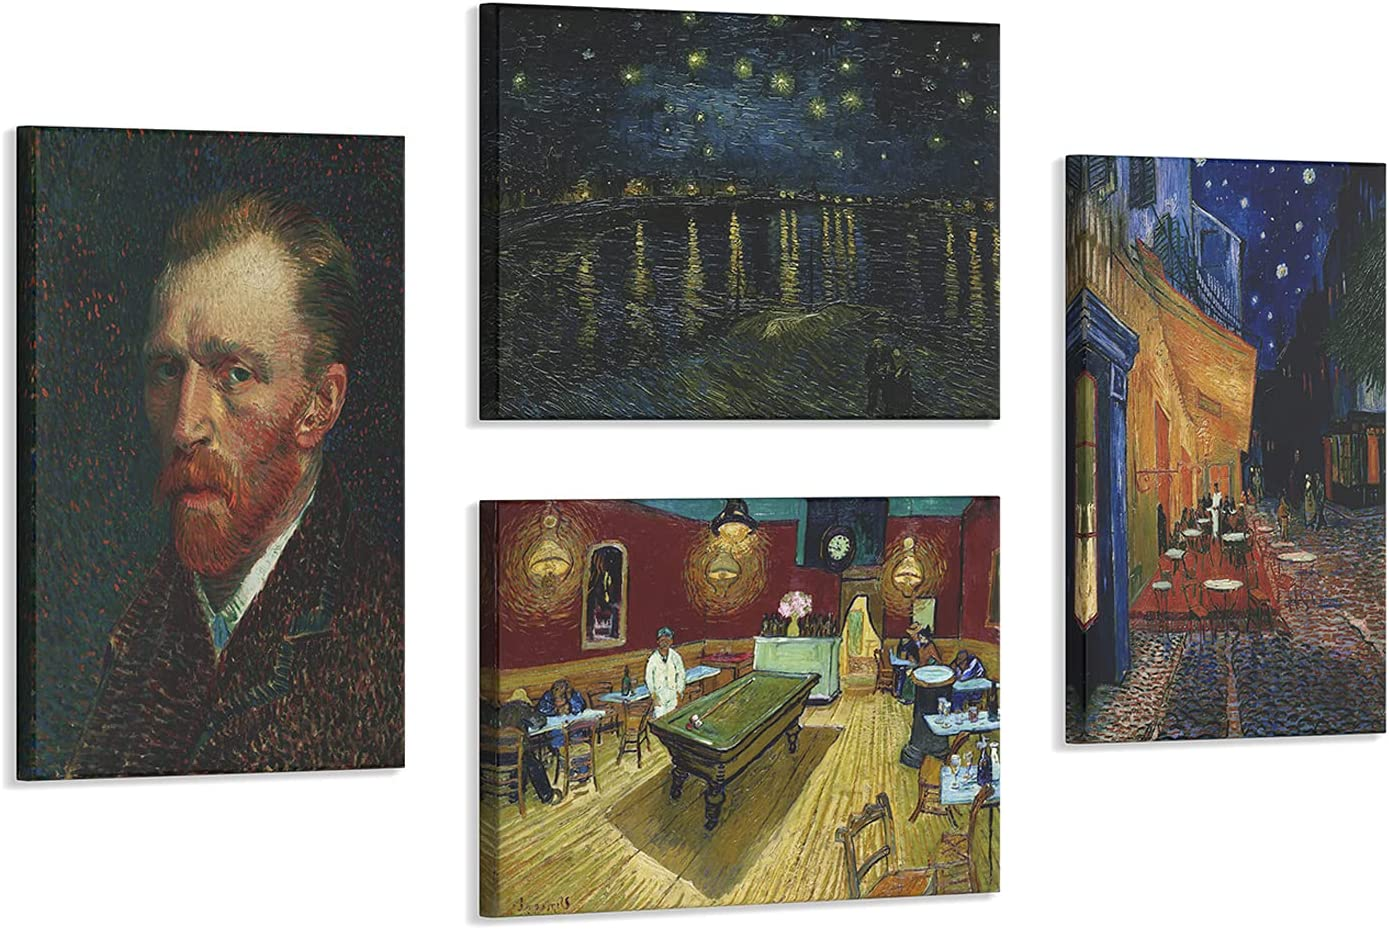 4 Pcs Abstract Van Gogh Cafe Max 54% OFFicial site OFF at Terrace Wall Art Night Waterproo